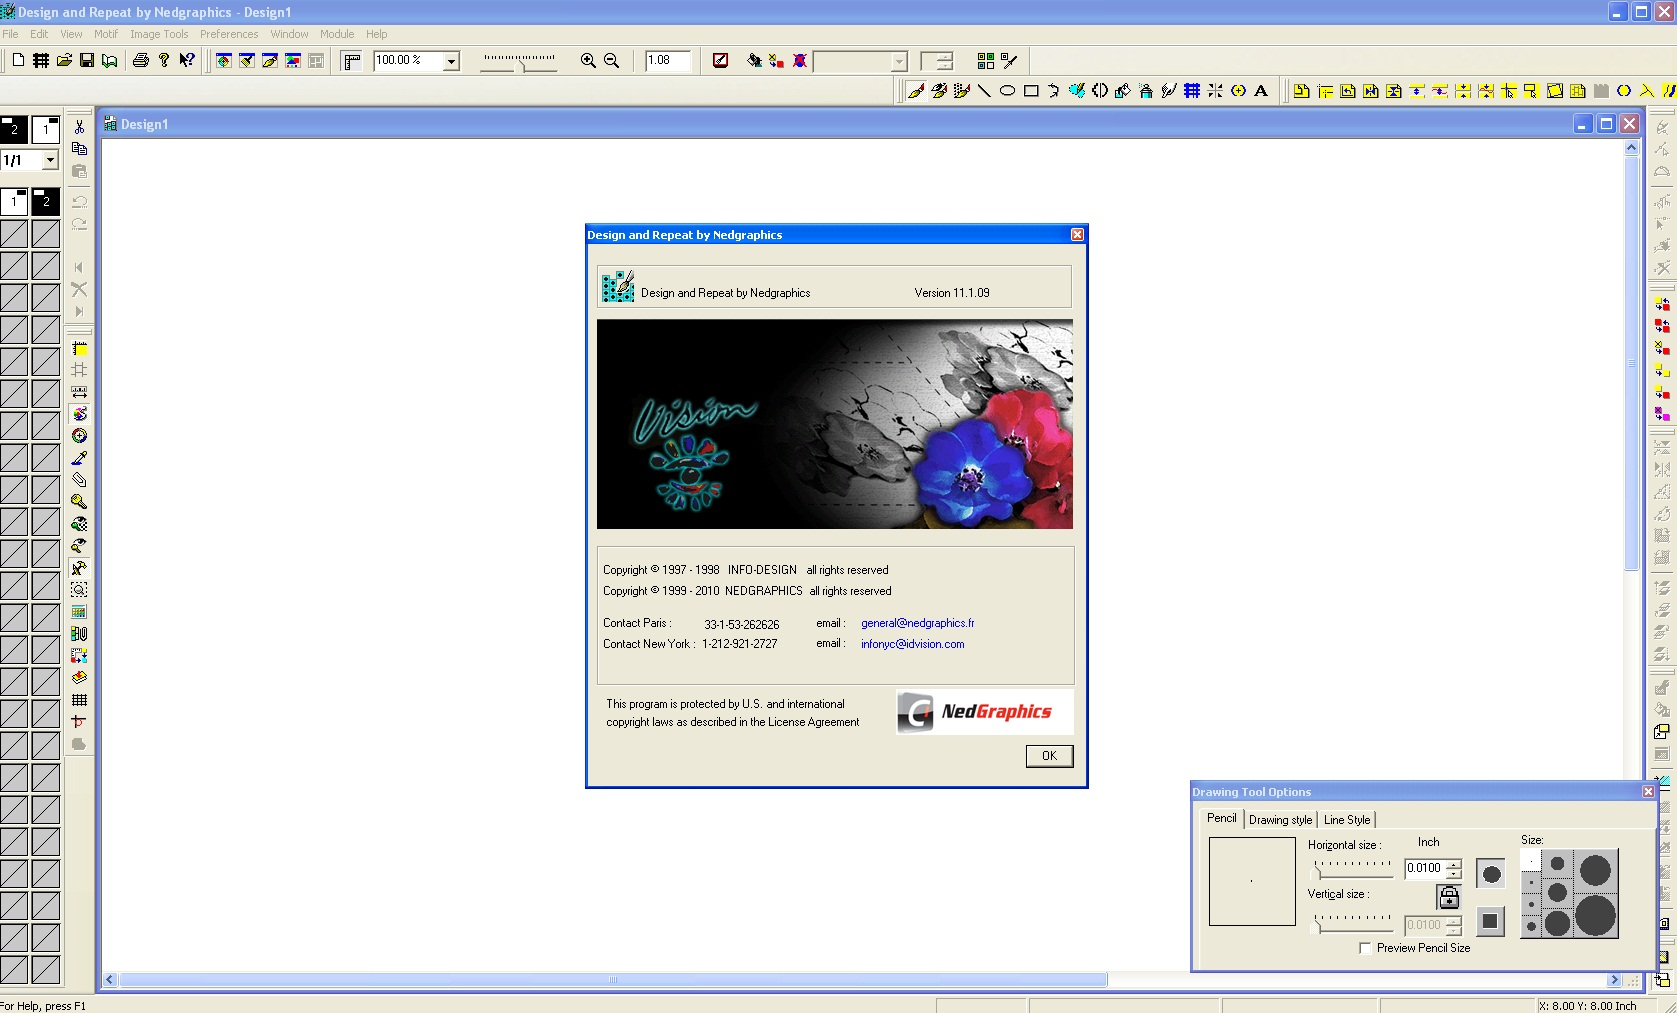 DOWNLOAD NEDGRAPHICS TEXCELLE 3.01 AND CARPET WEAVER 6.9 - InterNACHI 69